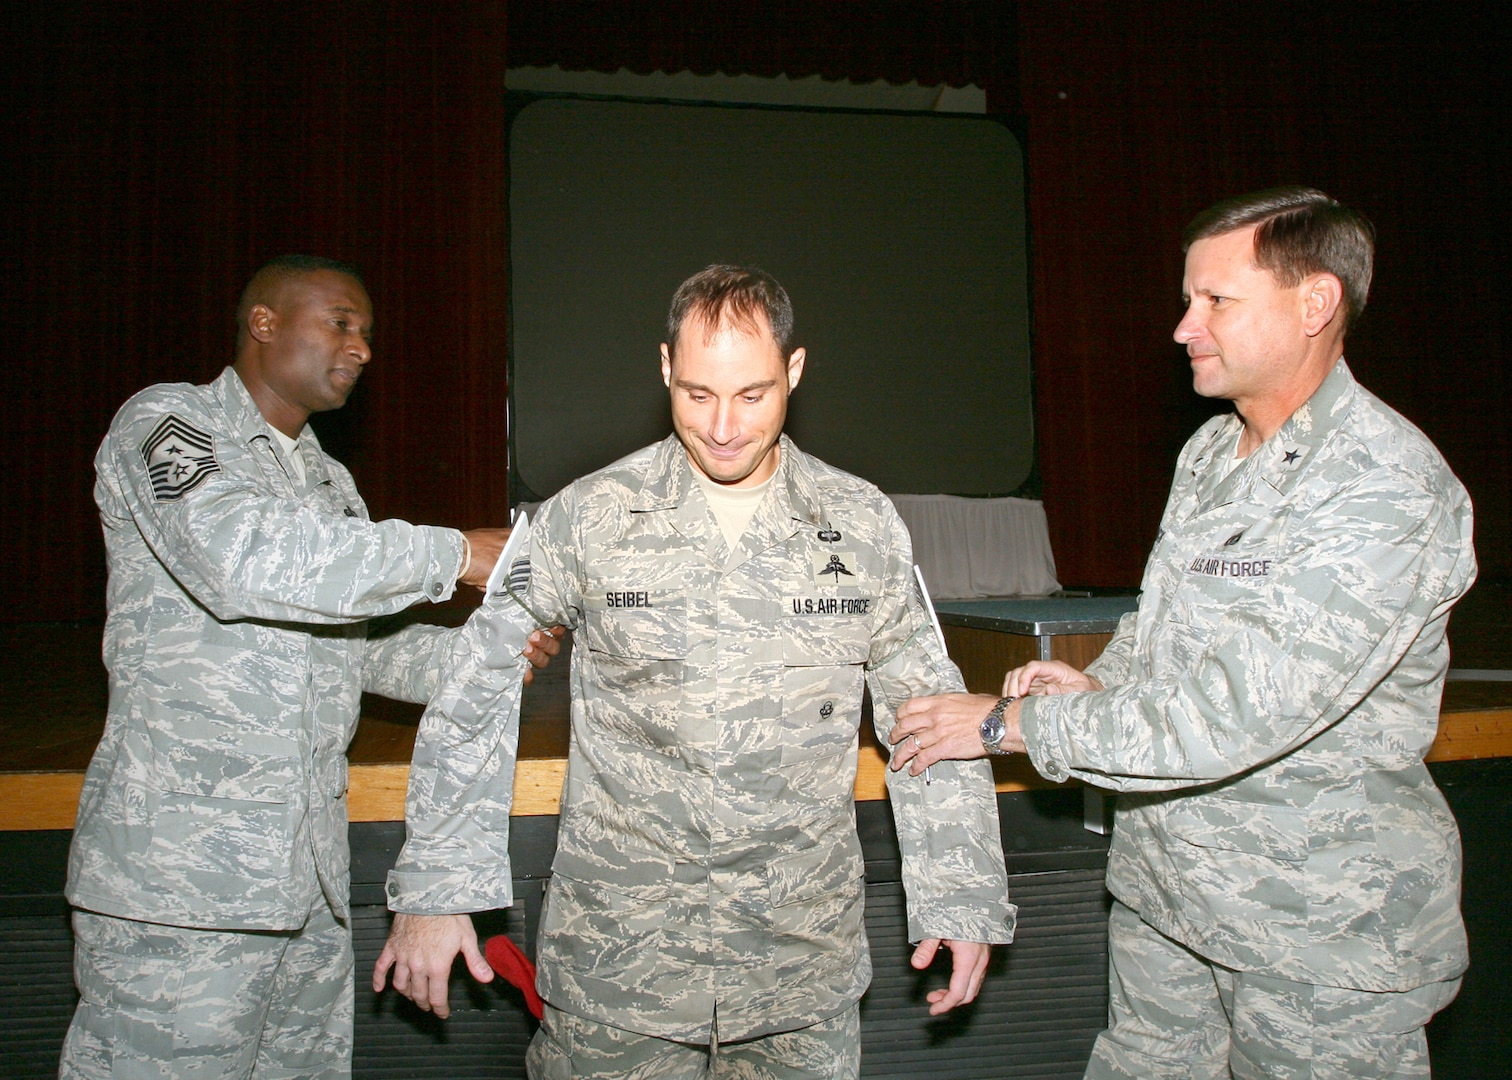 Chief Master Sgt. Juan Lewis (left), 37th Training Wing command chief, and Brig. Gen. Len Patrick, 37th TRW commander, give Staff Sgt. Nicholas Seibel technical sergeant stripes Dec. 16. Sergeant Seibel, 342nd Training Squadron, received an immediate promotion as part of the Stripes for Exceptional Performers Program. (USAF photo by Robbin Cresswell)